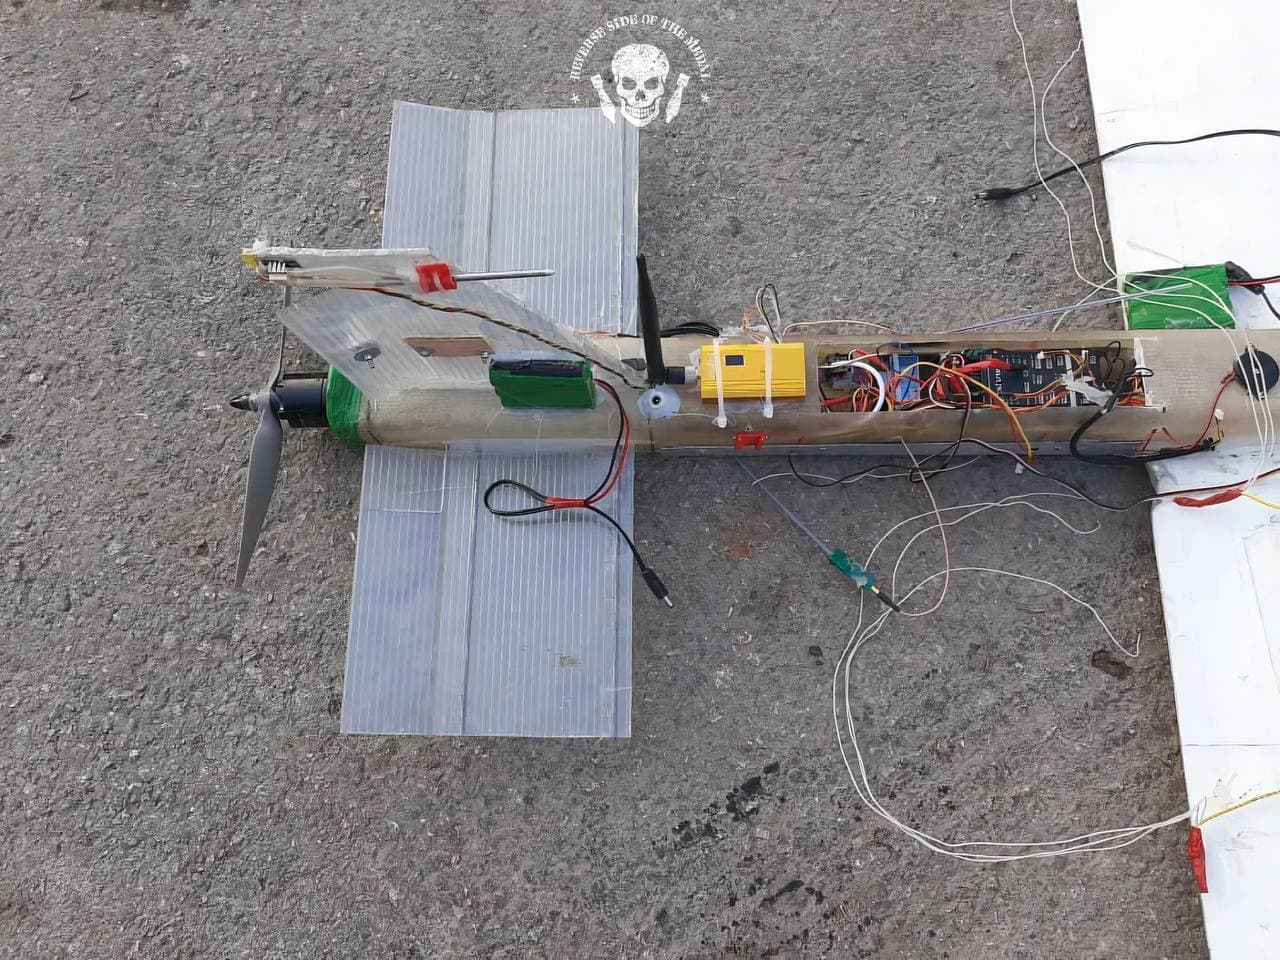 Syrian Army Shot Down Suicide Drone Launched By Militants In Greater Idlib (Photos)